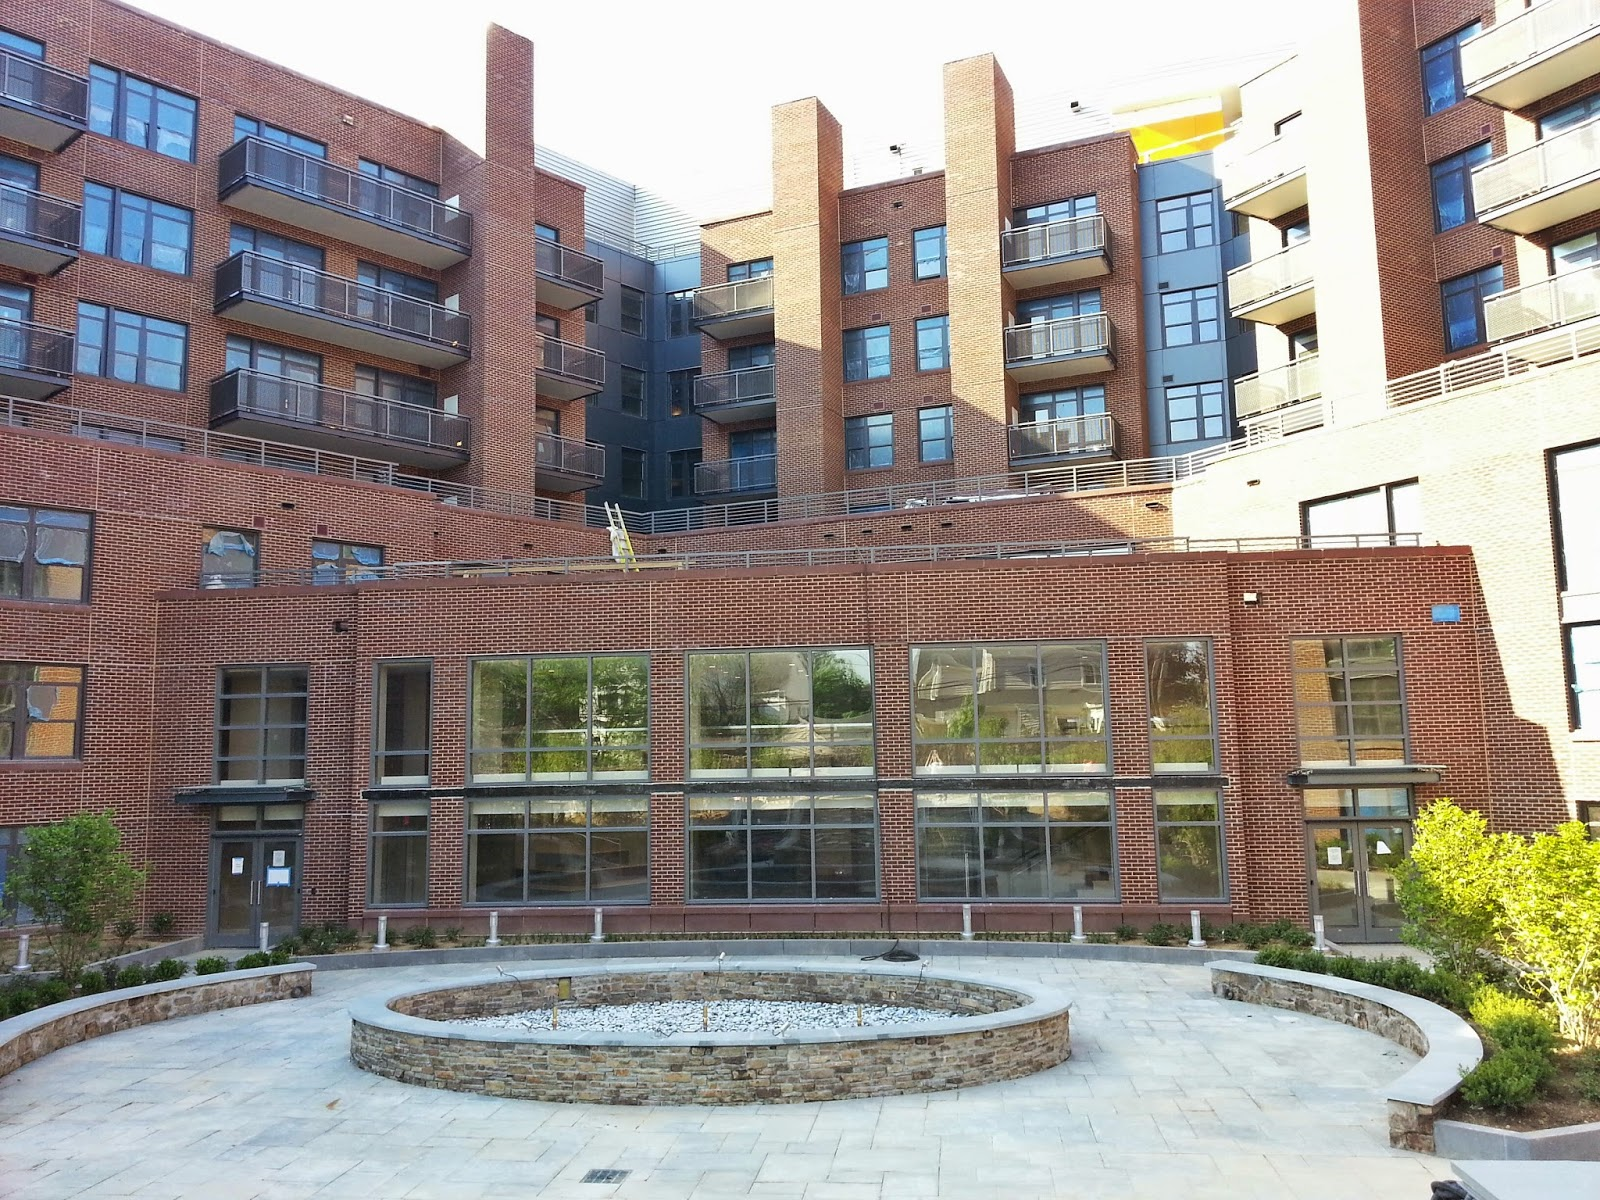 Marvelous Hereu0027s A Sneak Peek At The Park/plaza Common Area Behind The Flats At  Bethesda Avenue Luxury Apartments. Some Vegetation Is In Place, As Well As  Most Of The ...